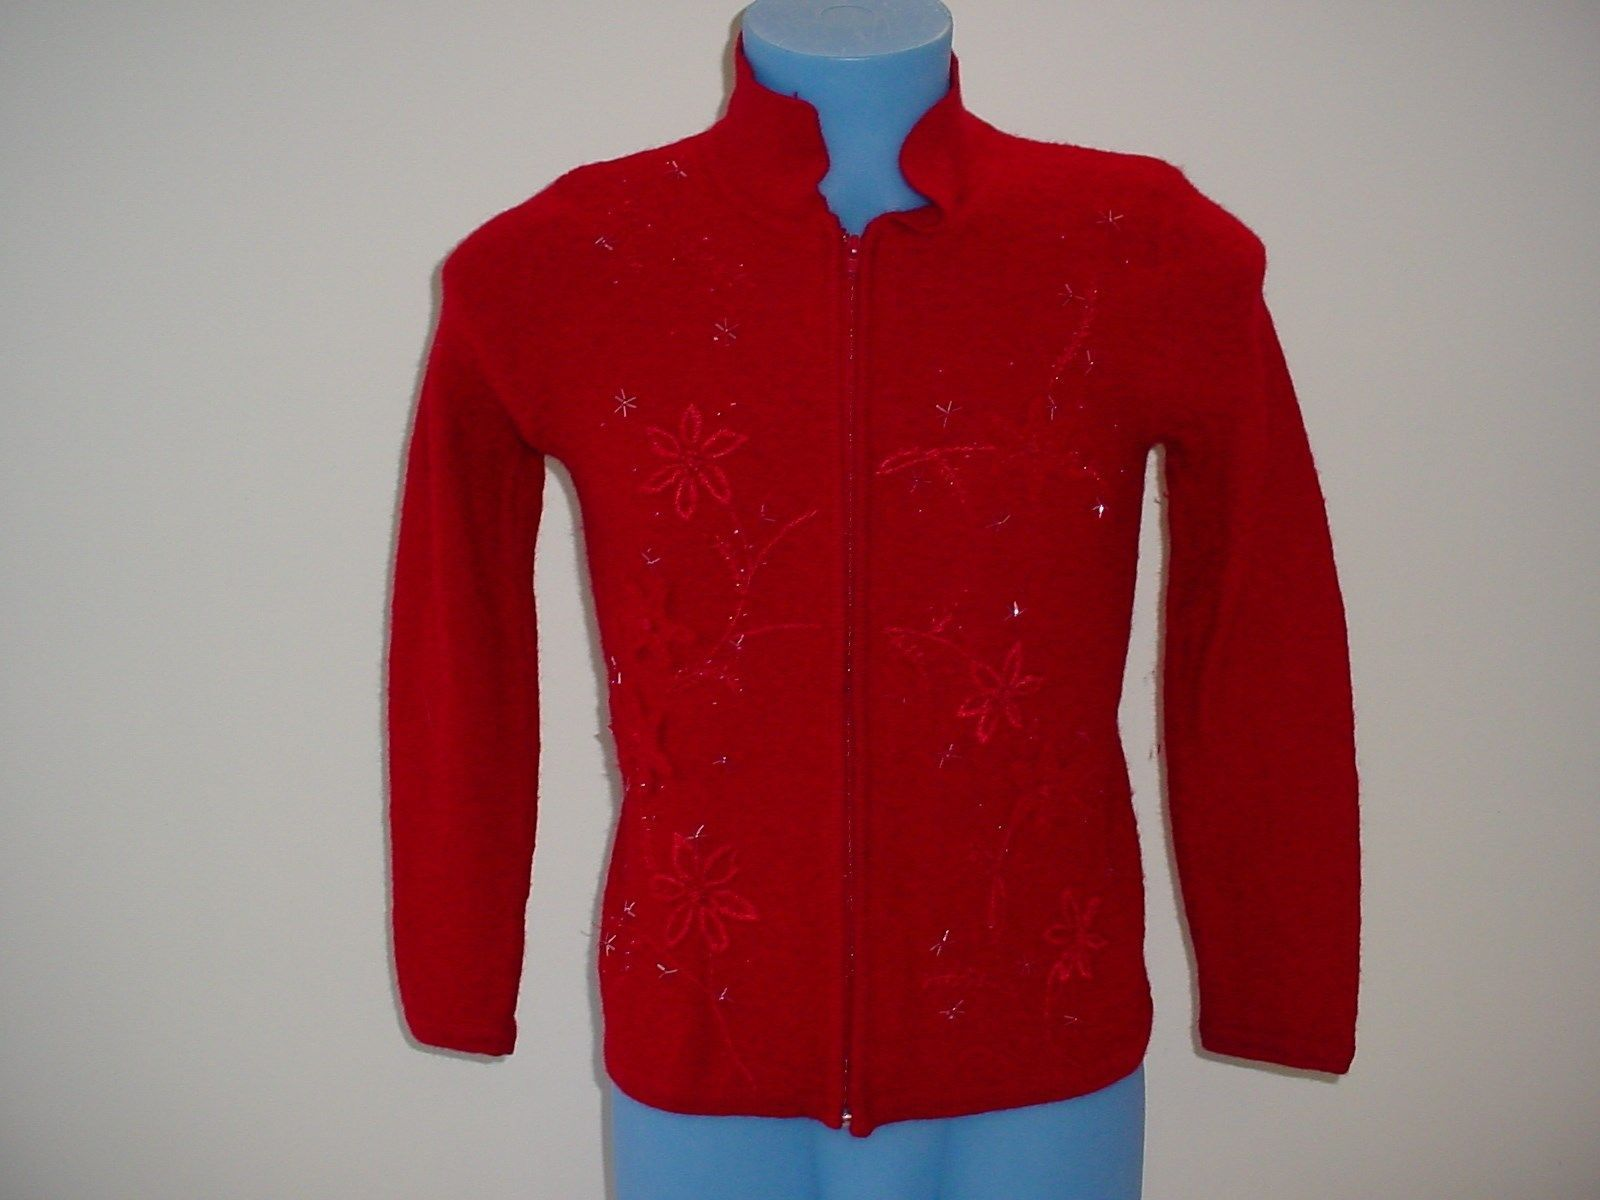 3dfac548b8a Dress Barn Ugly Christmas Sweater Zip Up and 50 similar items. 57